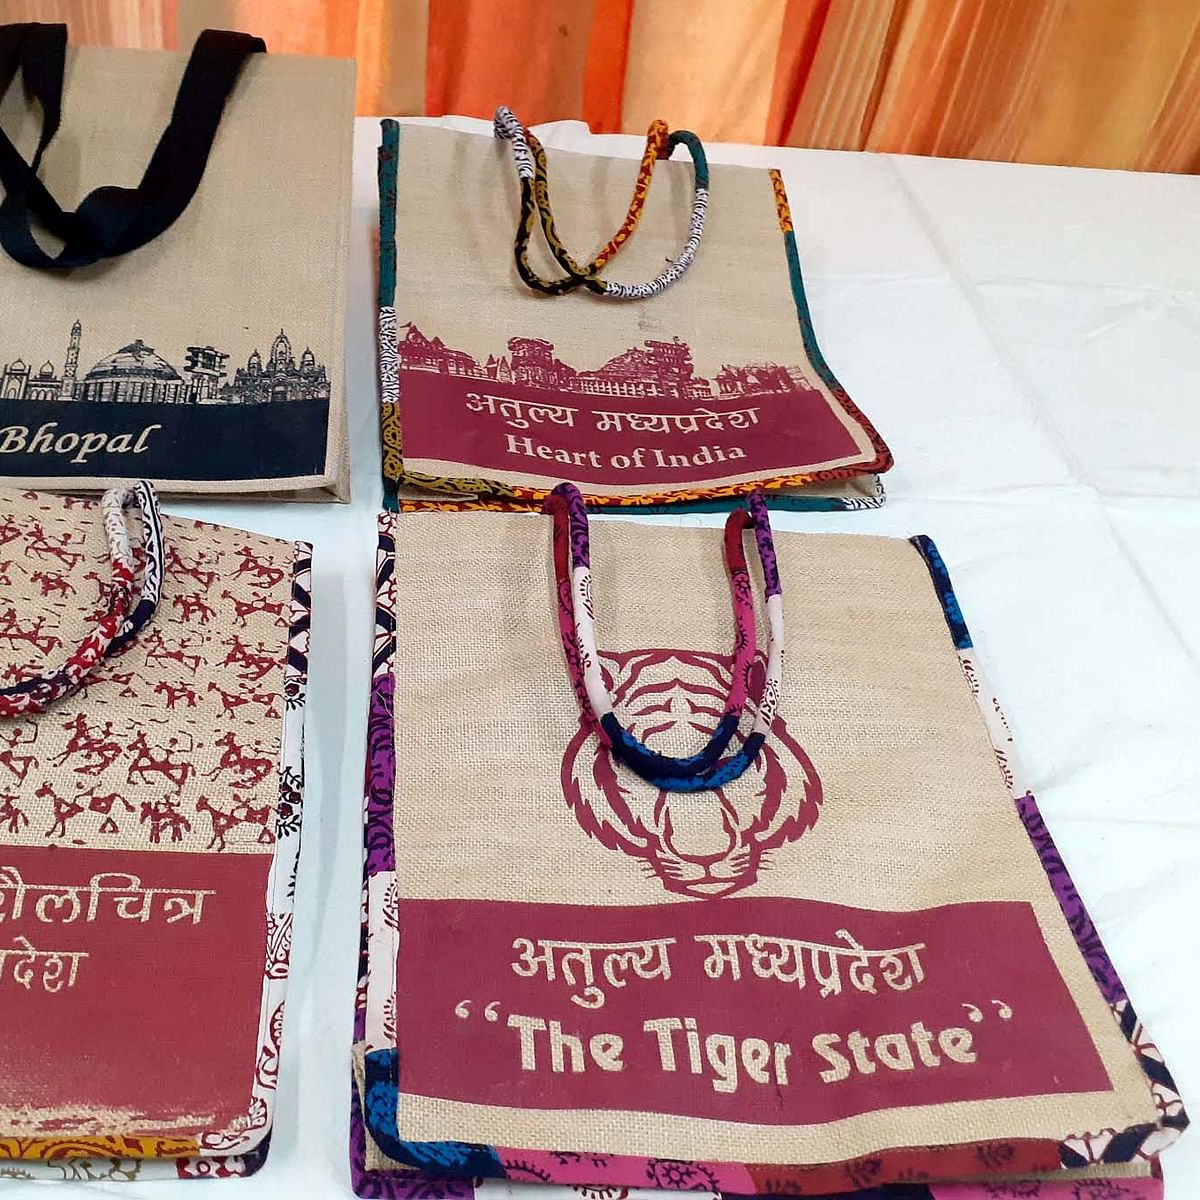 Bhopal: Jute, leather bags to promote MP Tourism